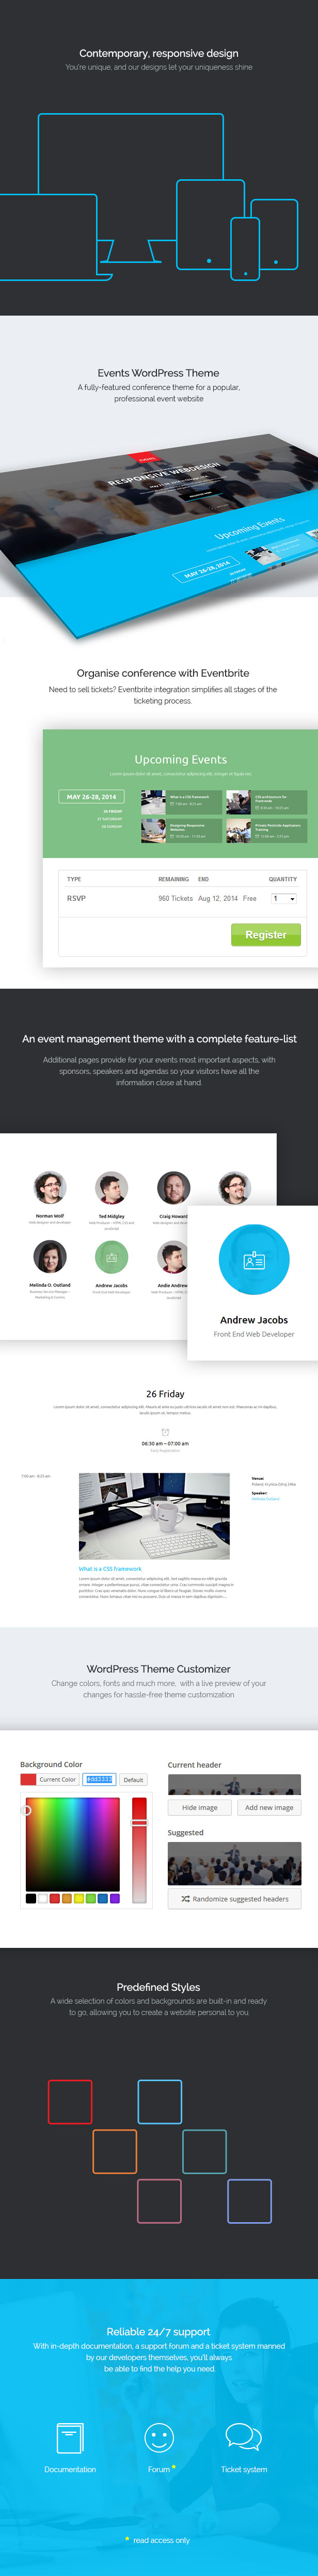 Events - WordPress Theme from GavickPro